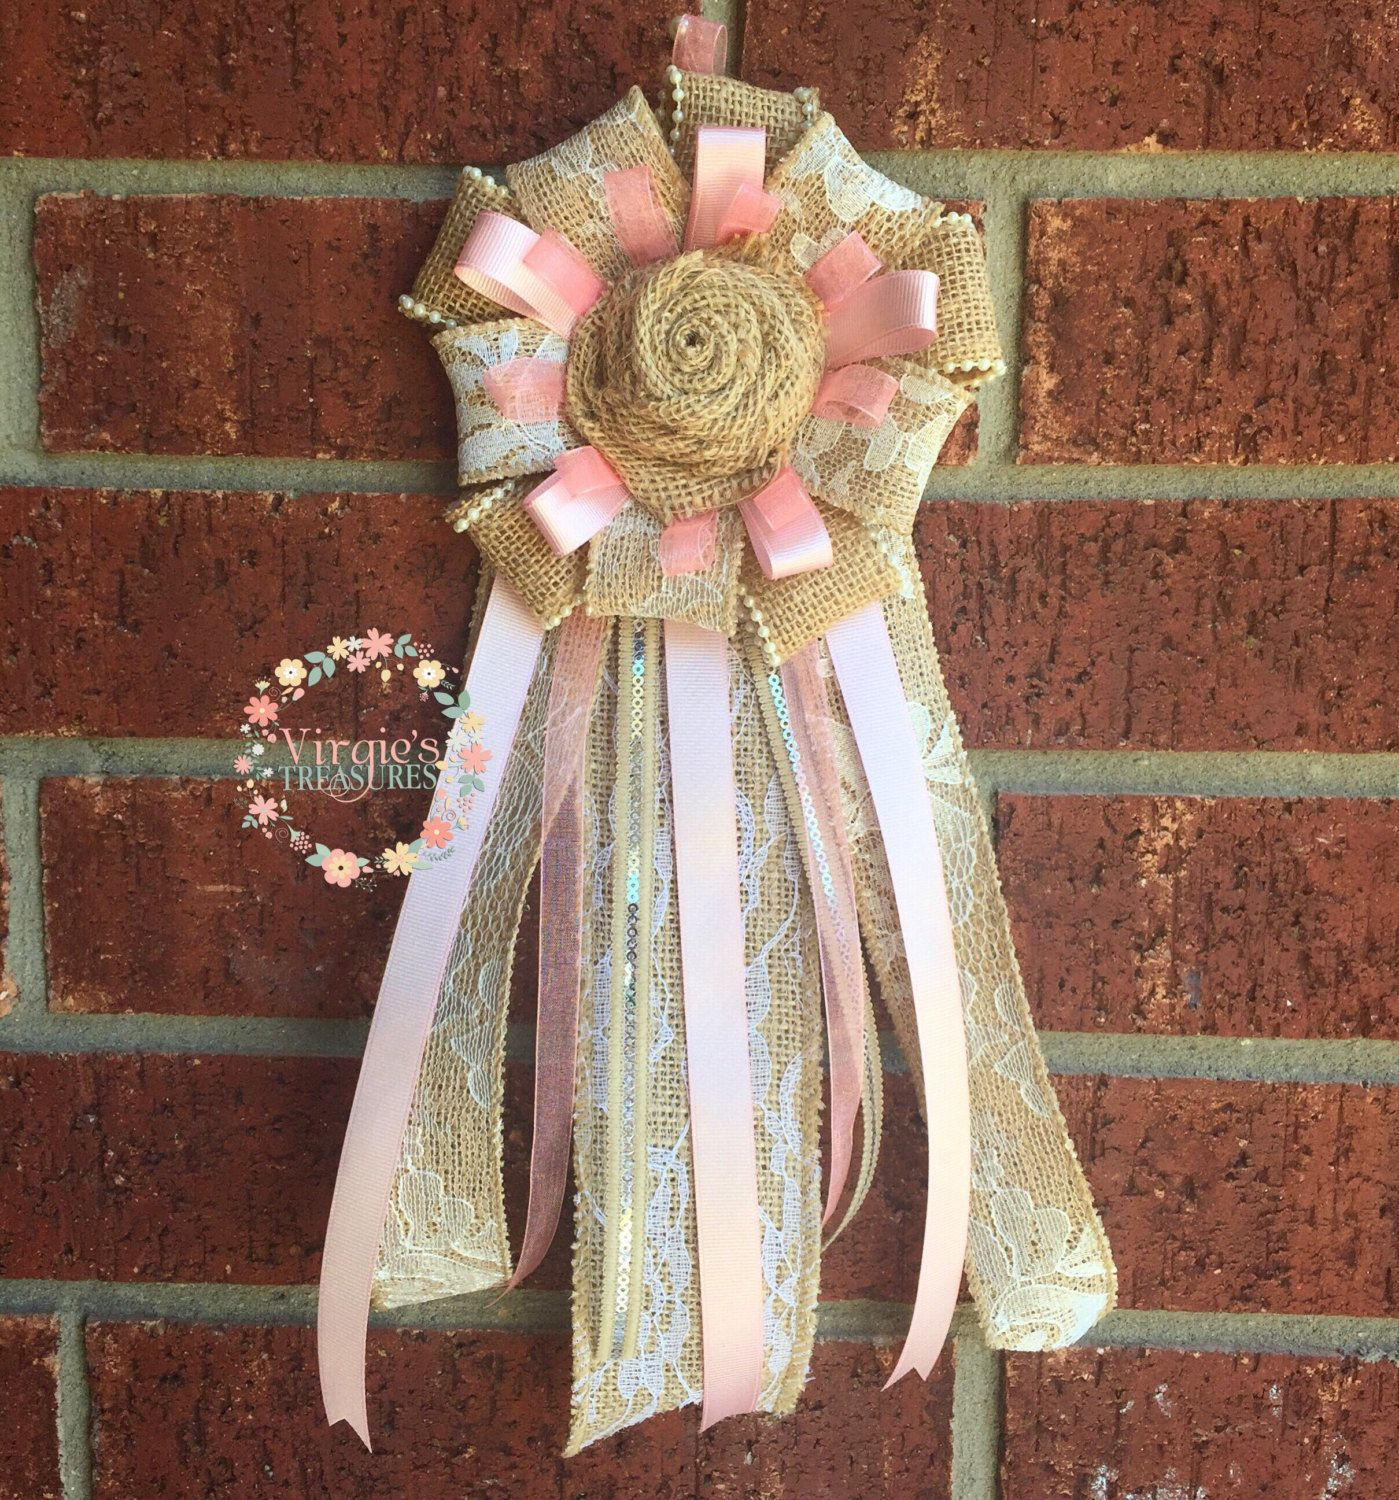 bridal shower corsage grandmother to be corsage mom to be corsage bridal shower mum modern corsage burlap corsage baby shower corsage by